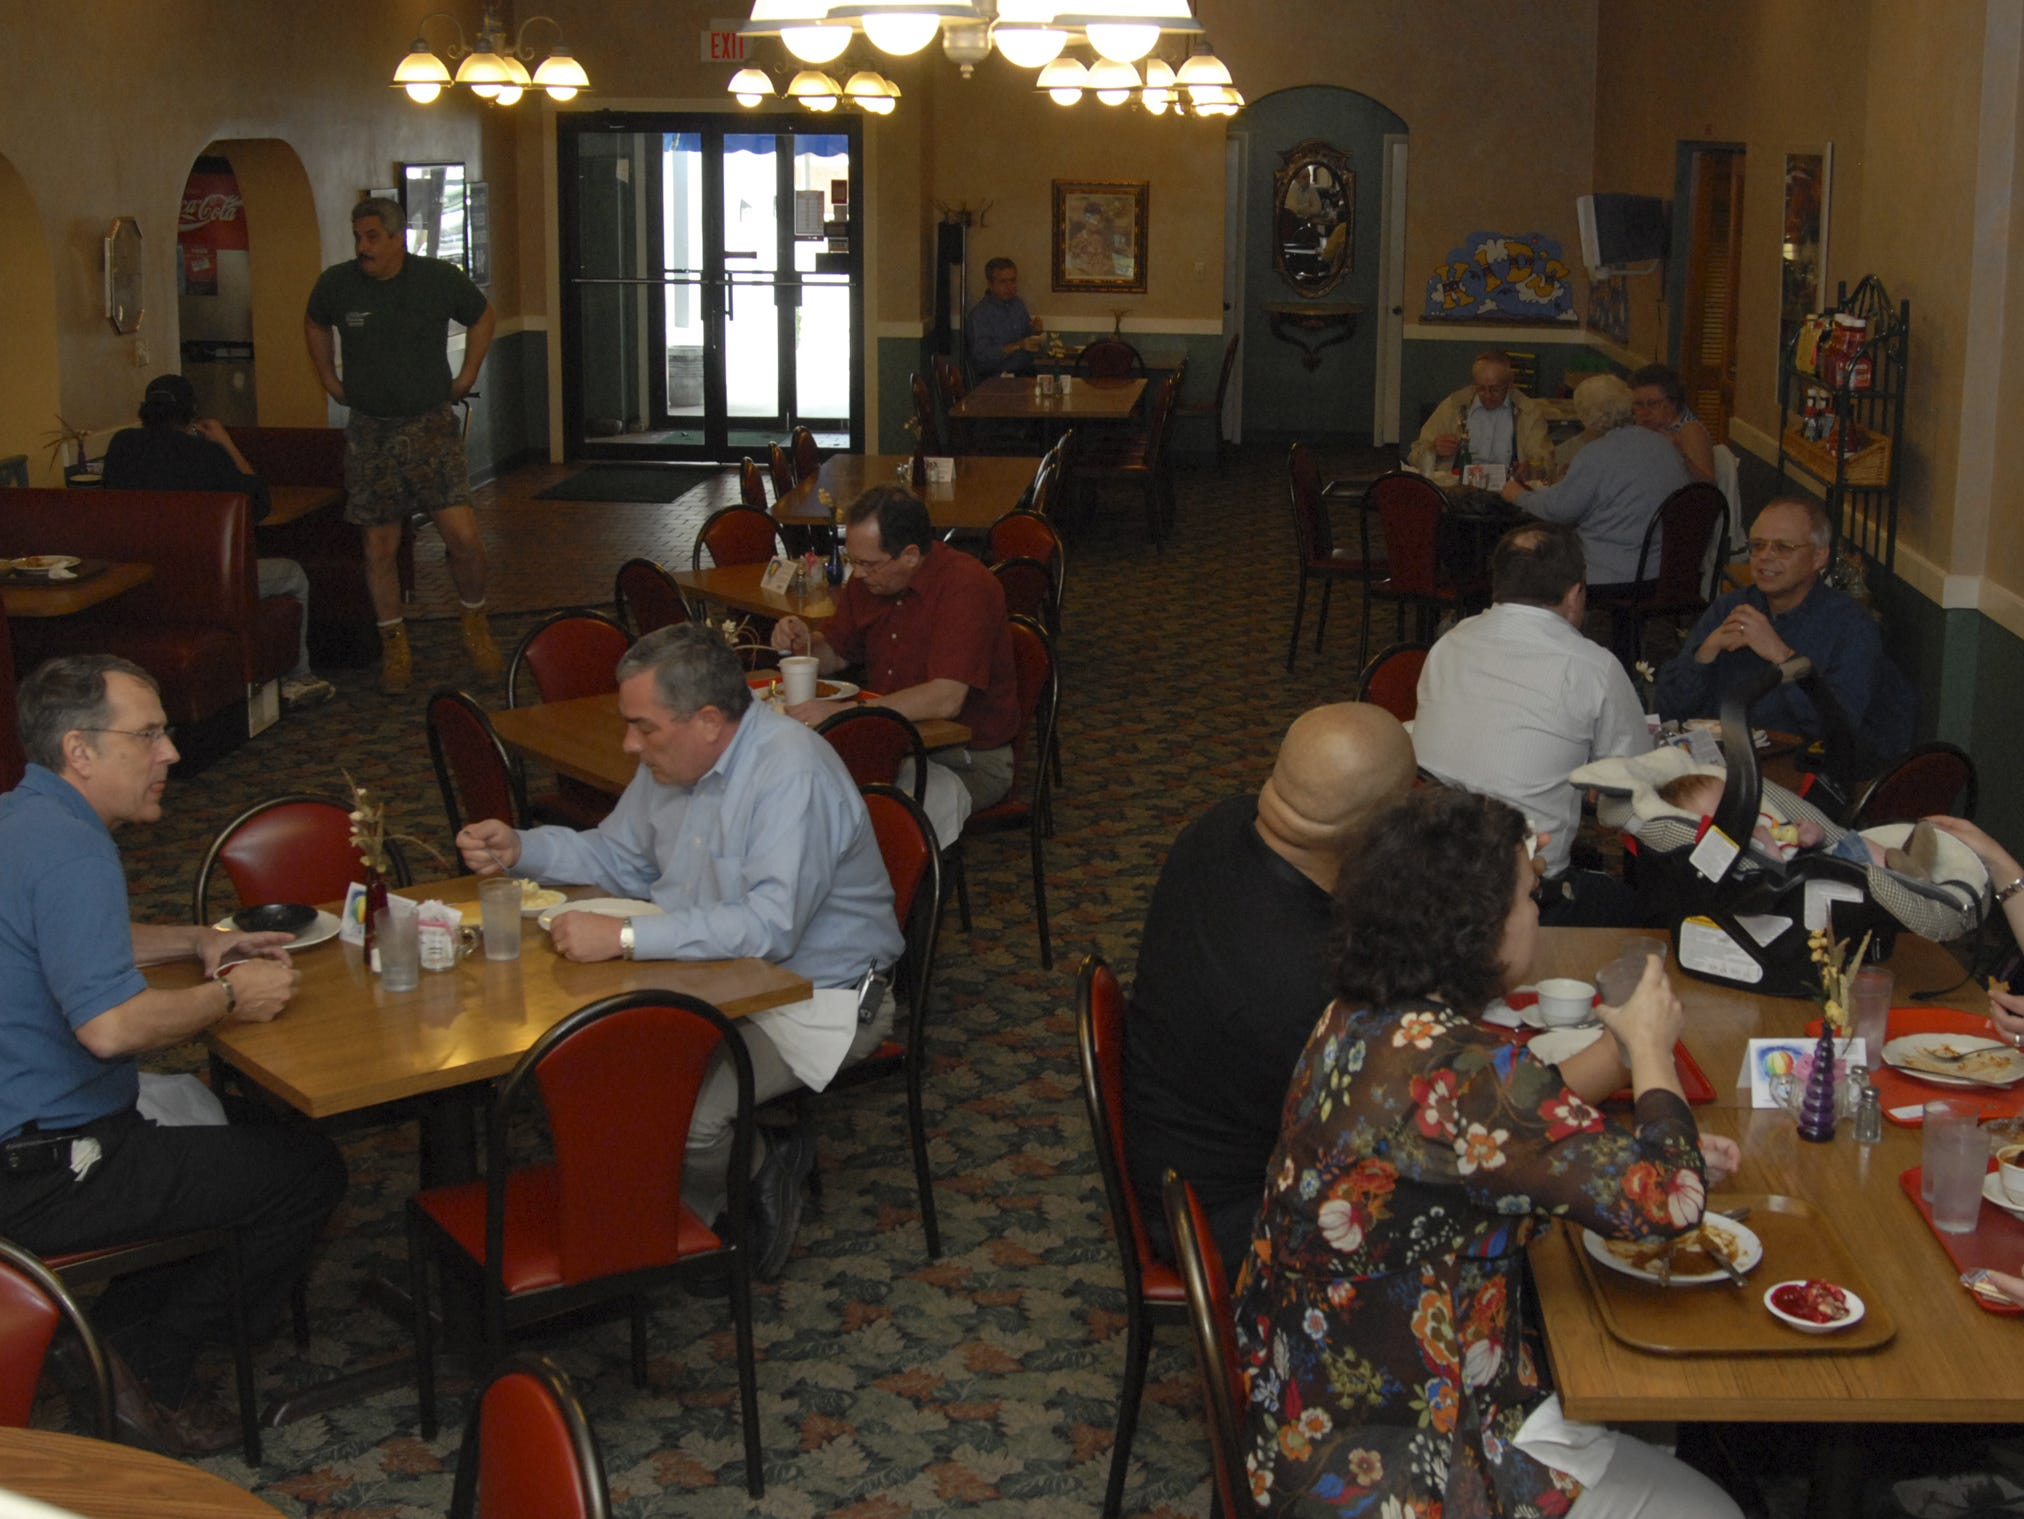 The lunchtime crowd eats at Shrank's Cafeteria in 2007.